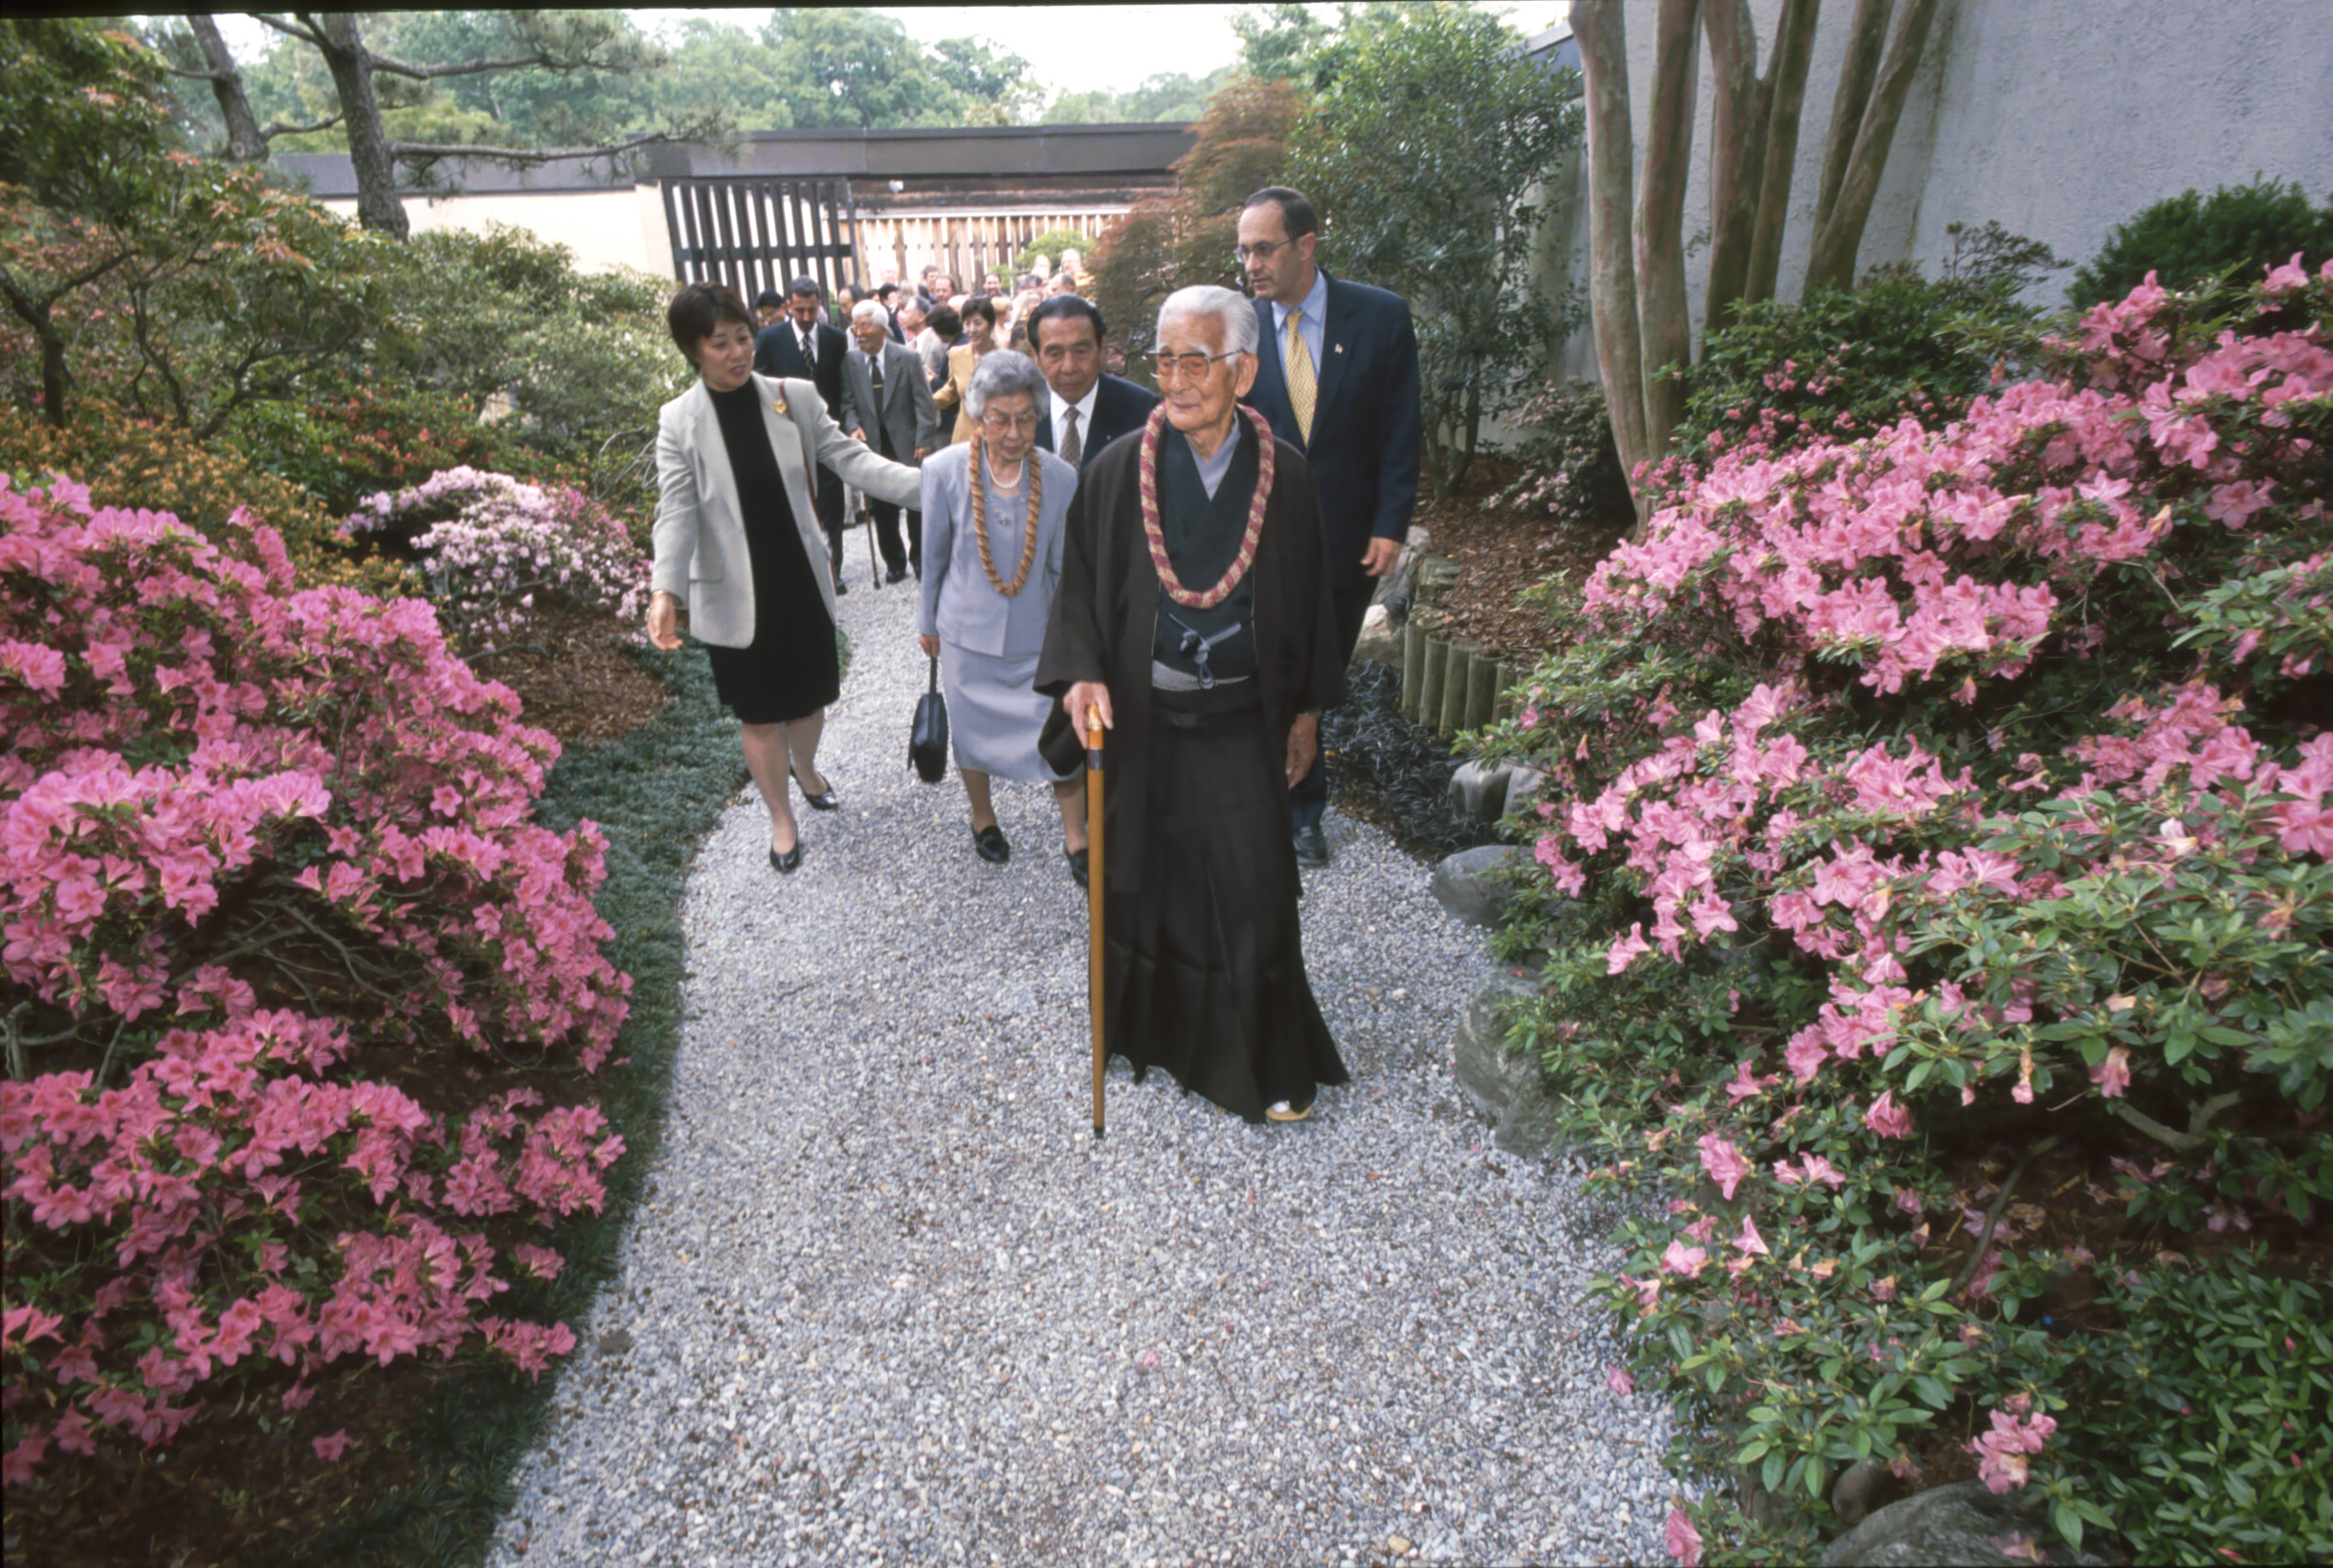 Saburo Kato at the dedication of the Kato Family Stroll Garden.